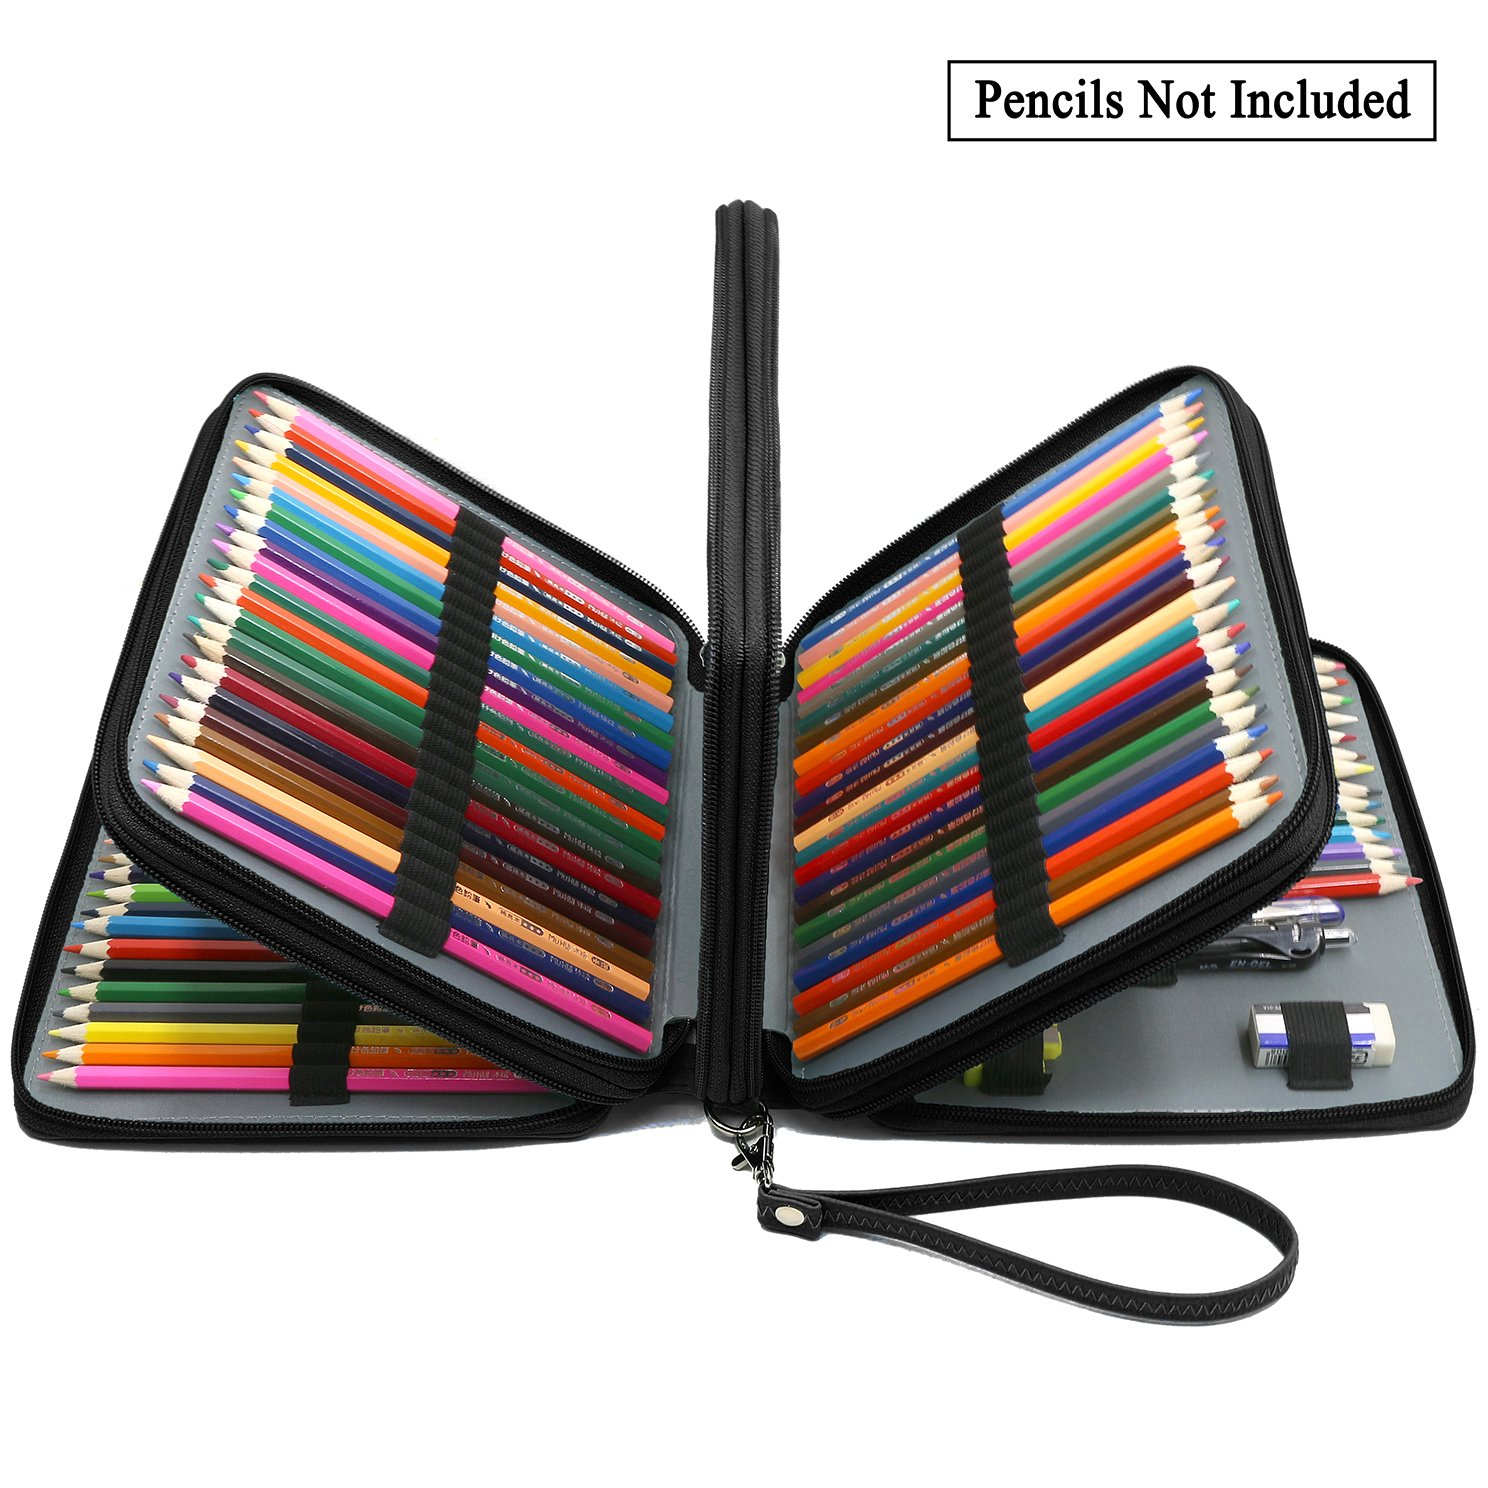 ADVcer 160 Slots Pencil Case - PU Leather Large Capacity Zipper Pen Bag with Hand Strap for Prismacolor Crayola Colored Pencil, Watercolor Pencils, Marco Pens, Gel Pen, Makeup Brush, Sharpener (Black)